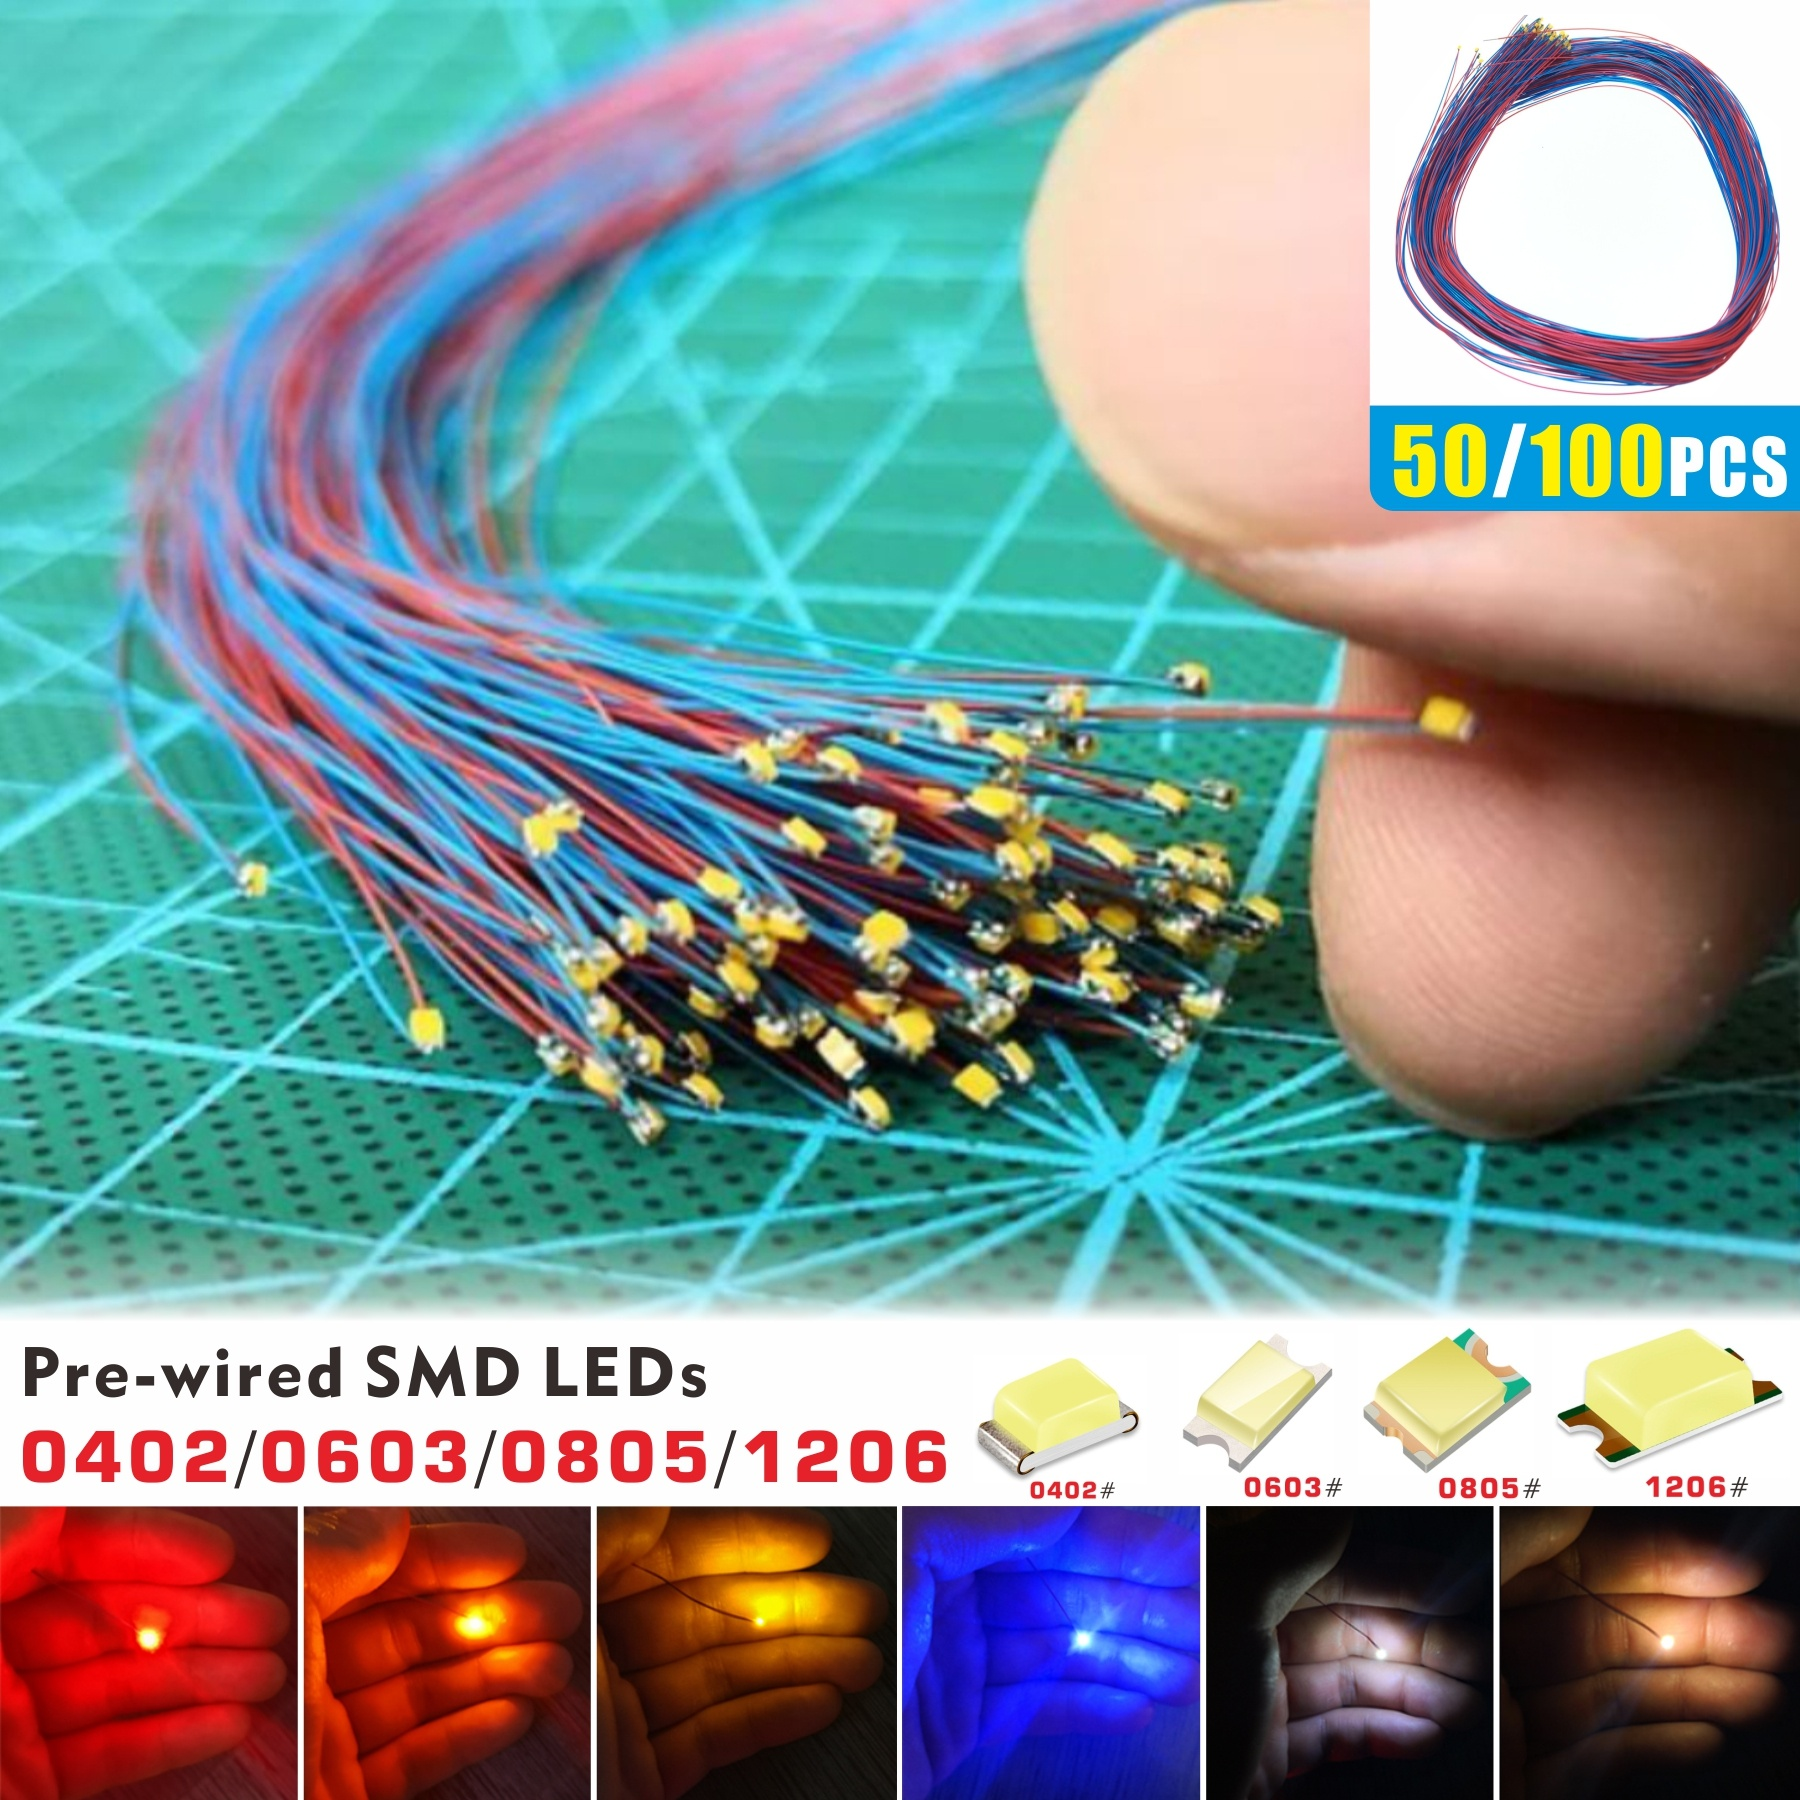 50 100pcs Pre Soldered Micro Smd Led Pre Wired Light Diode 0402 0603 0805 1206 Dc 2 8 3v For Diy Ho Scale Hobby Model Kit Wish